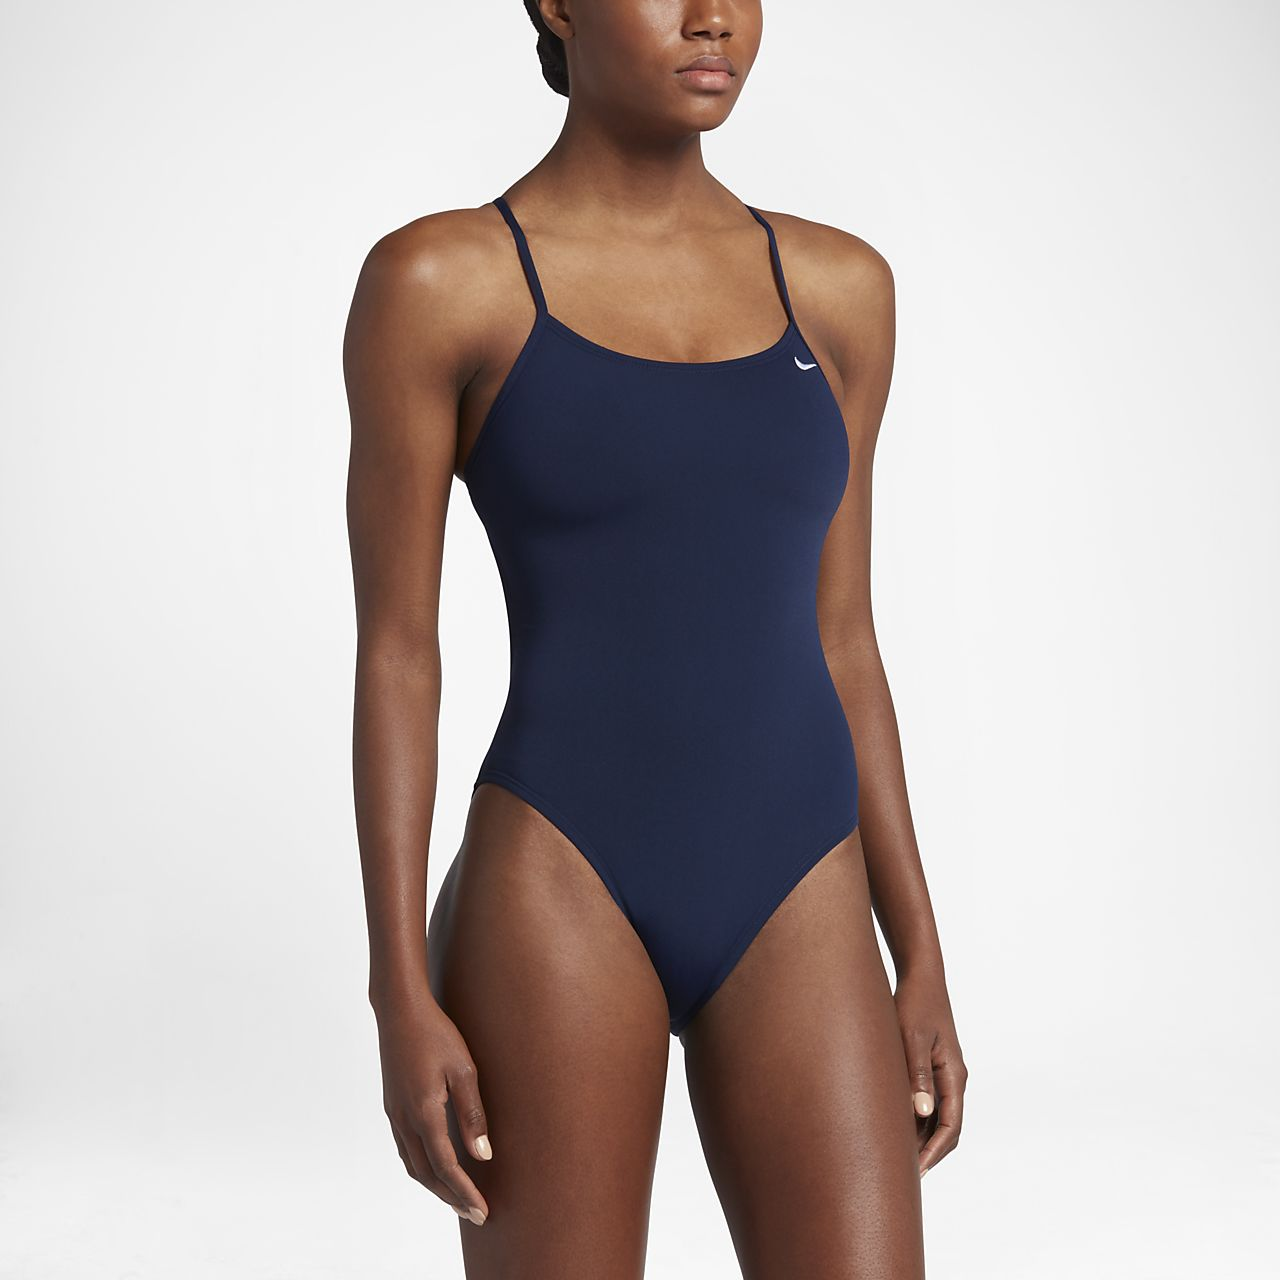 614db700882 Nike Poly Core Performance Cut-Out Women's Tank Swimsuit. Nike.com